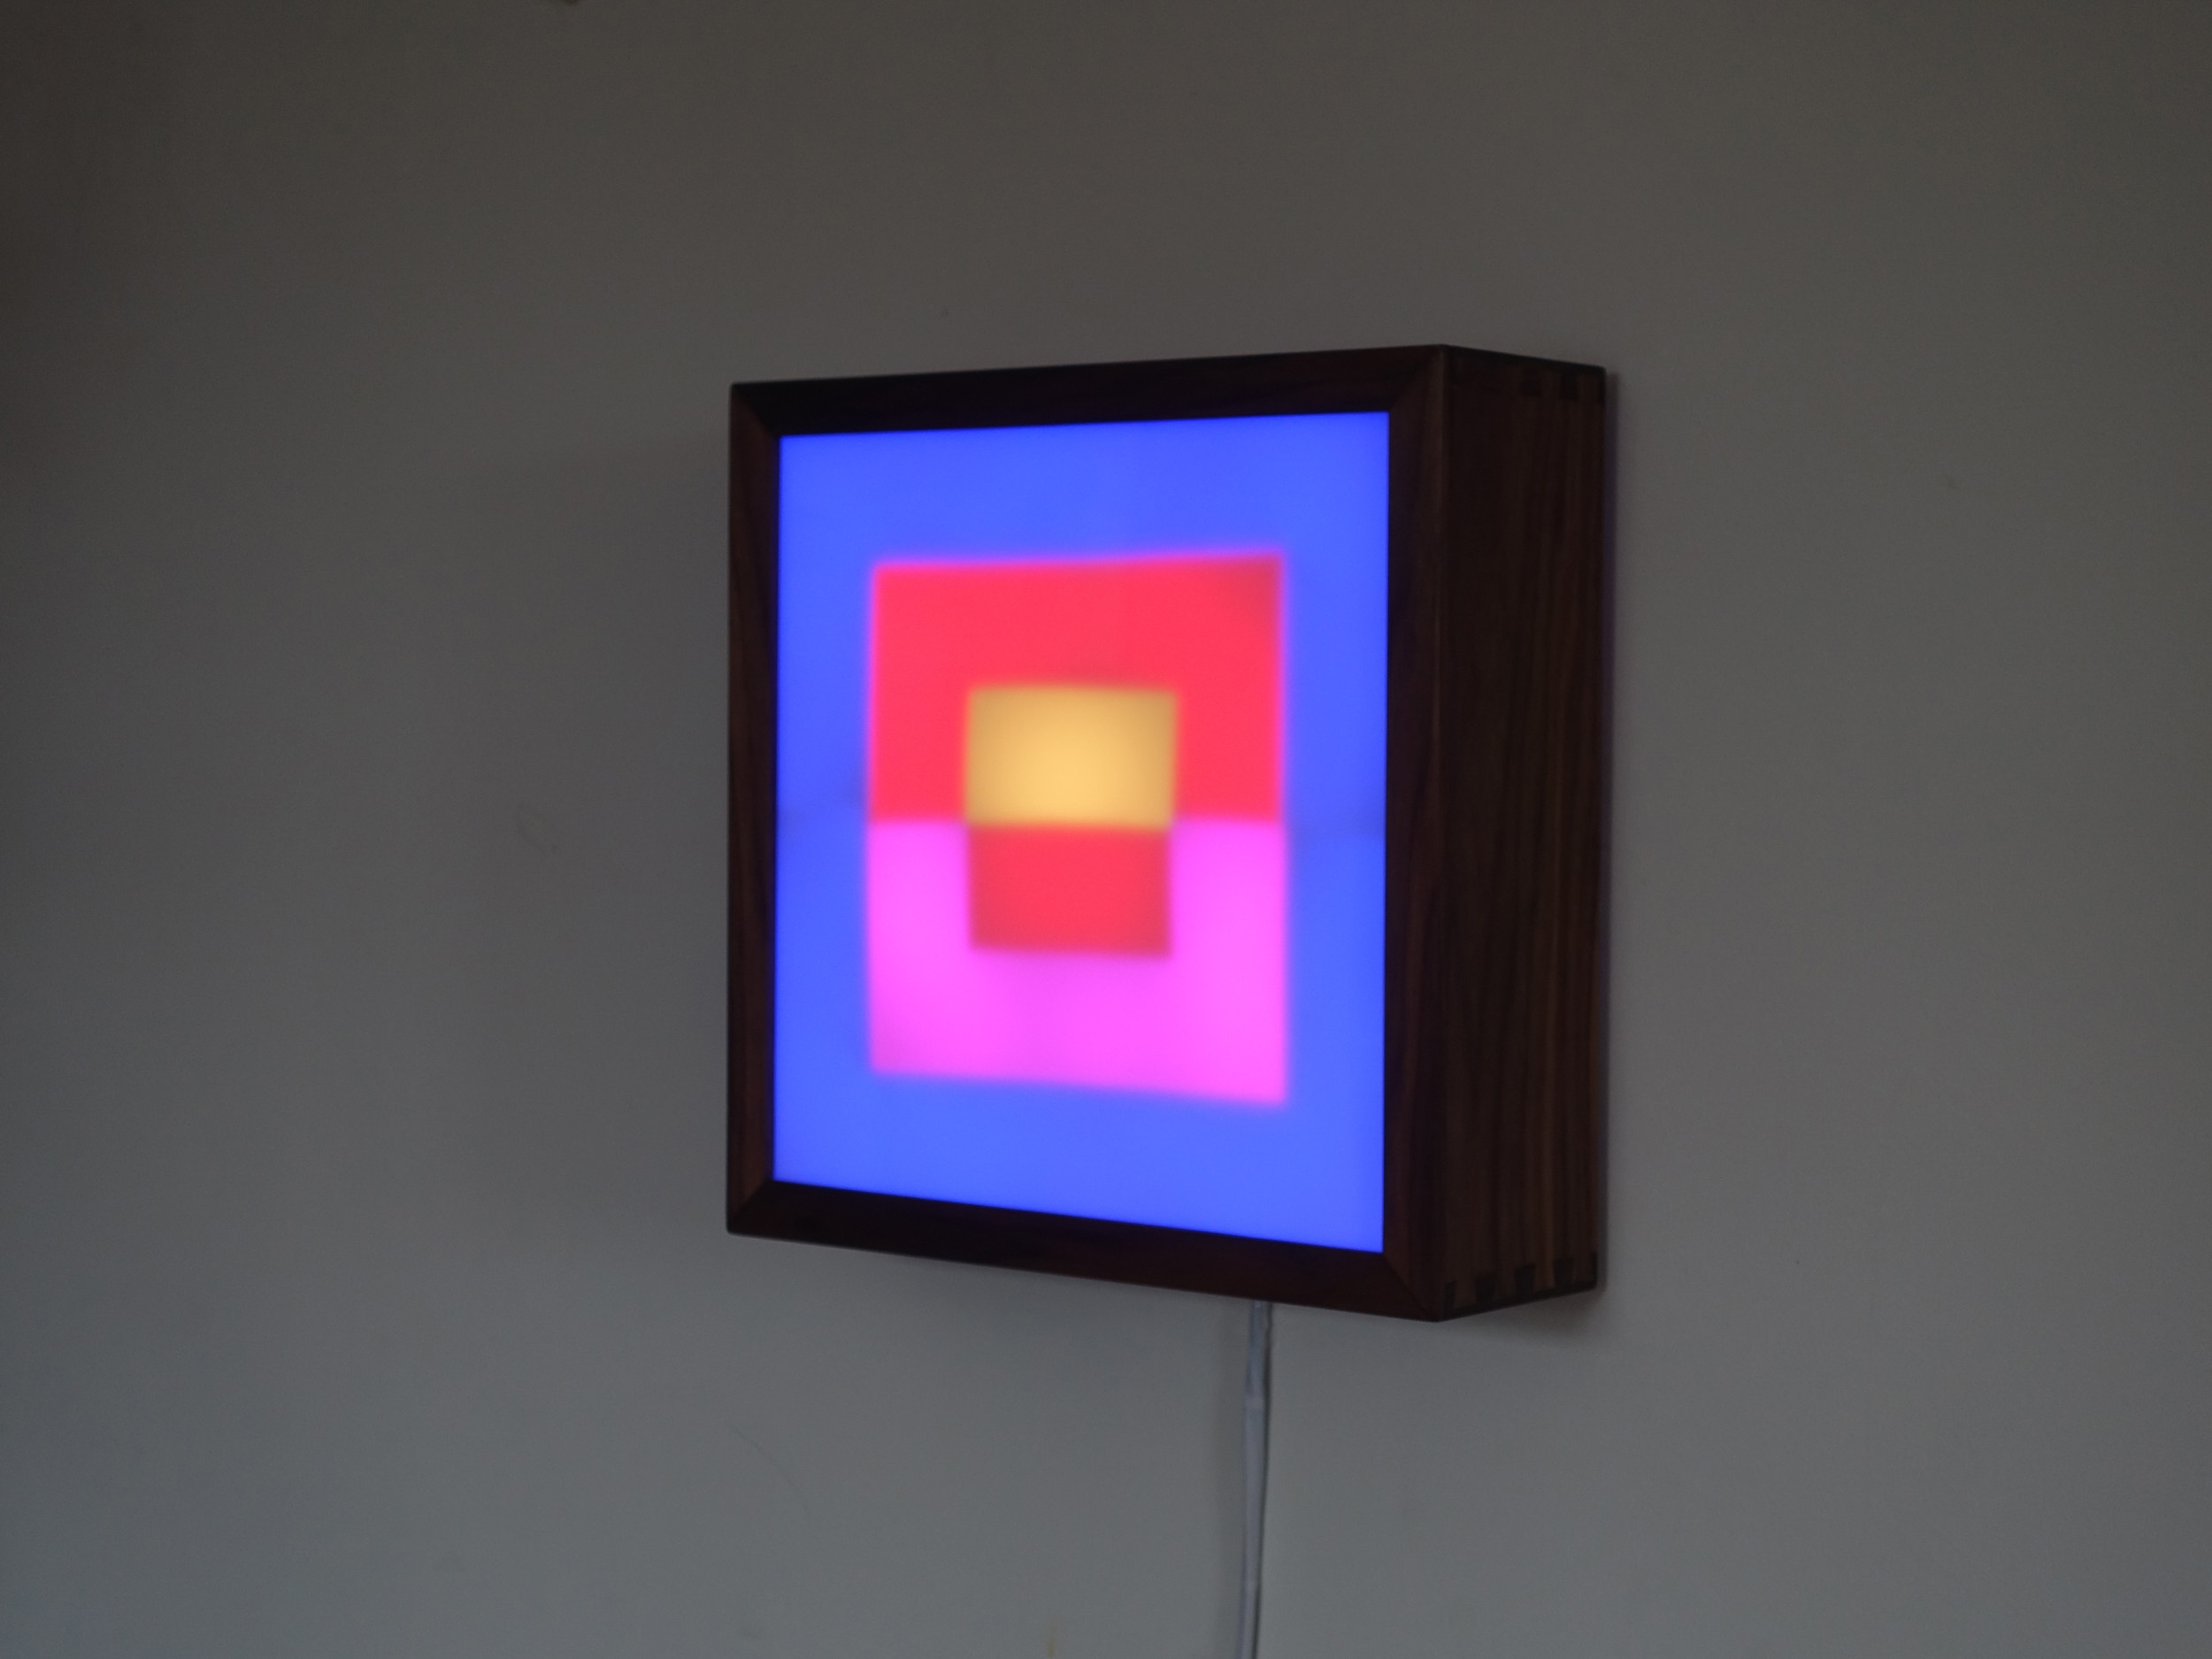 Copy of Square LED Lightbox prototype 1 of 5